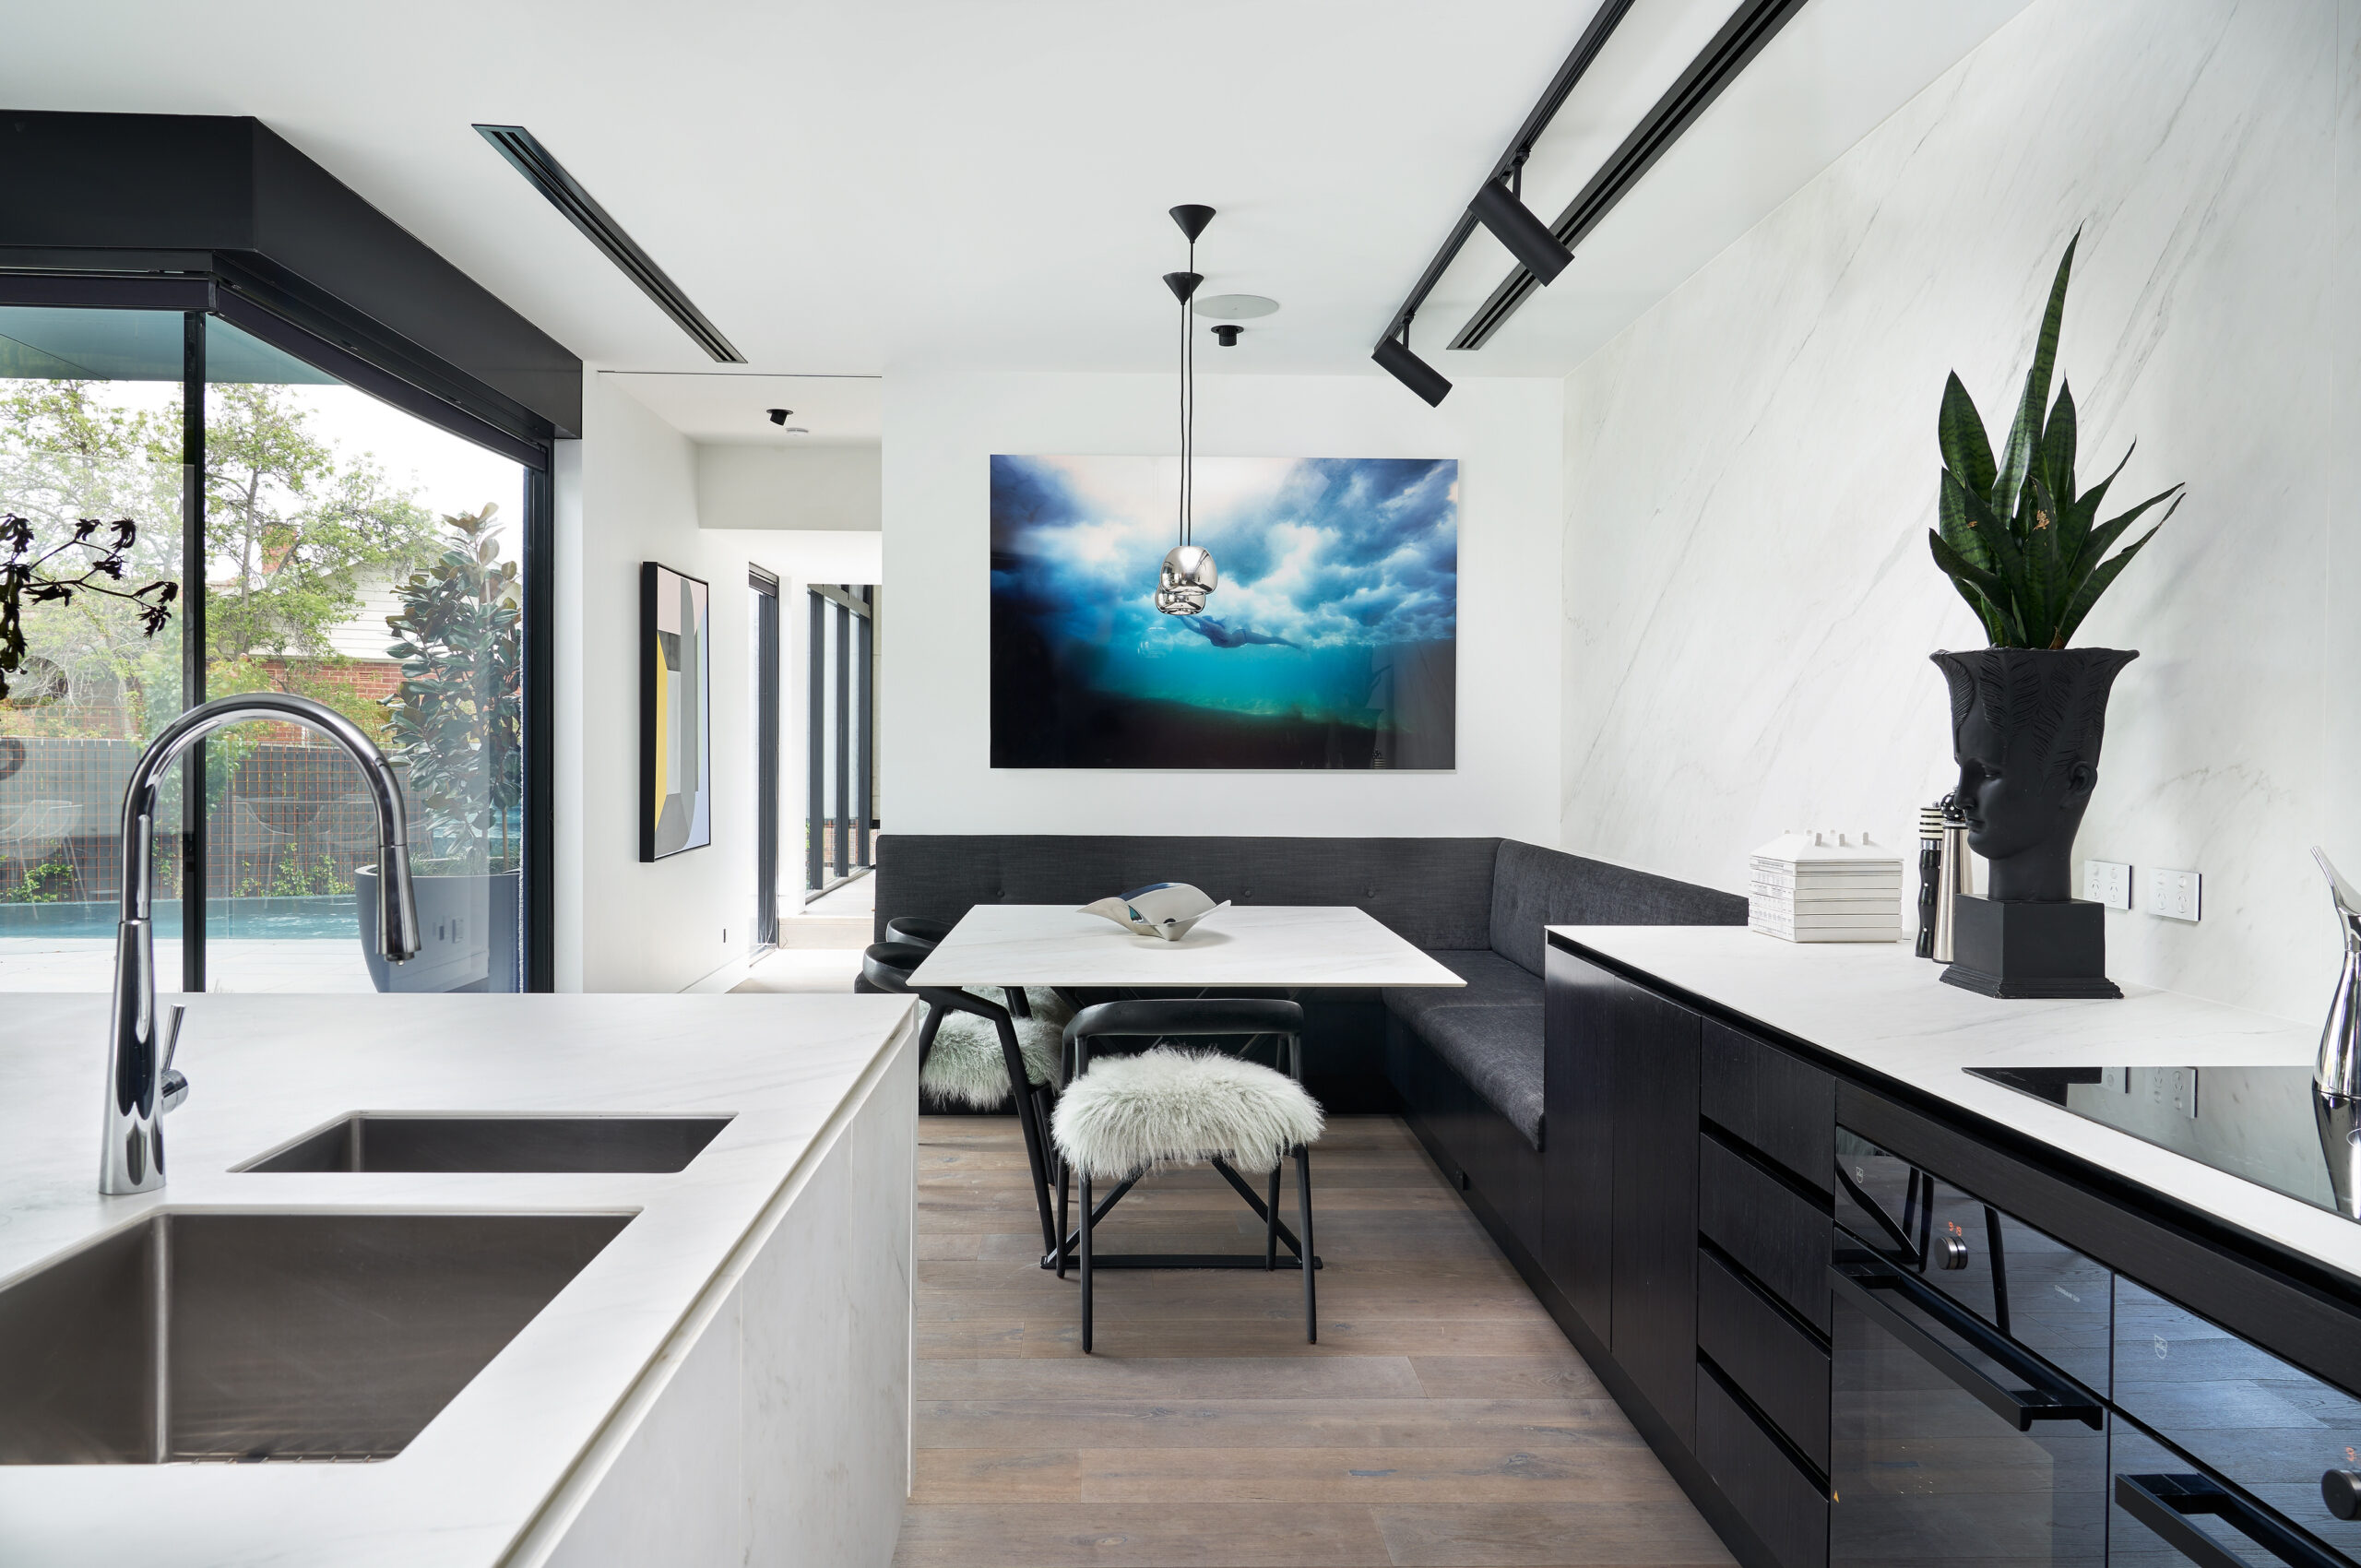 bright white modern open plan kitchen with meals area complete with bench seating